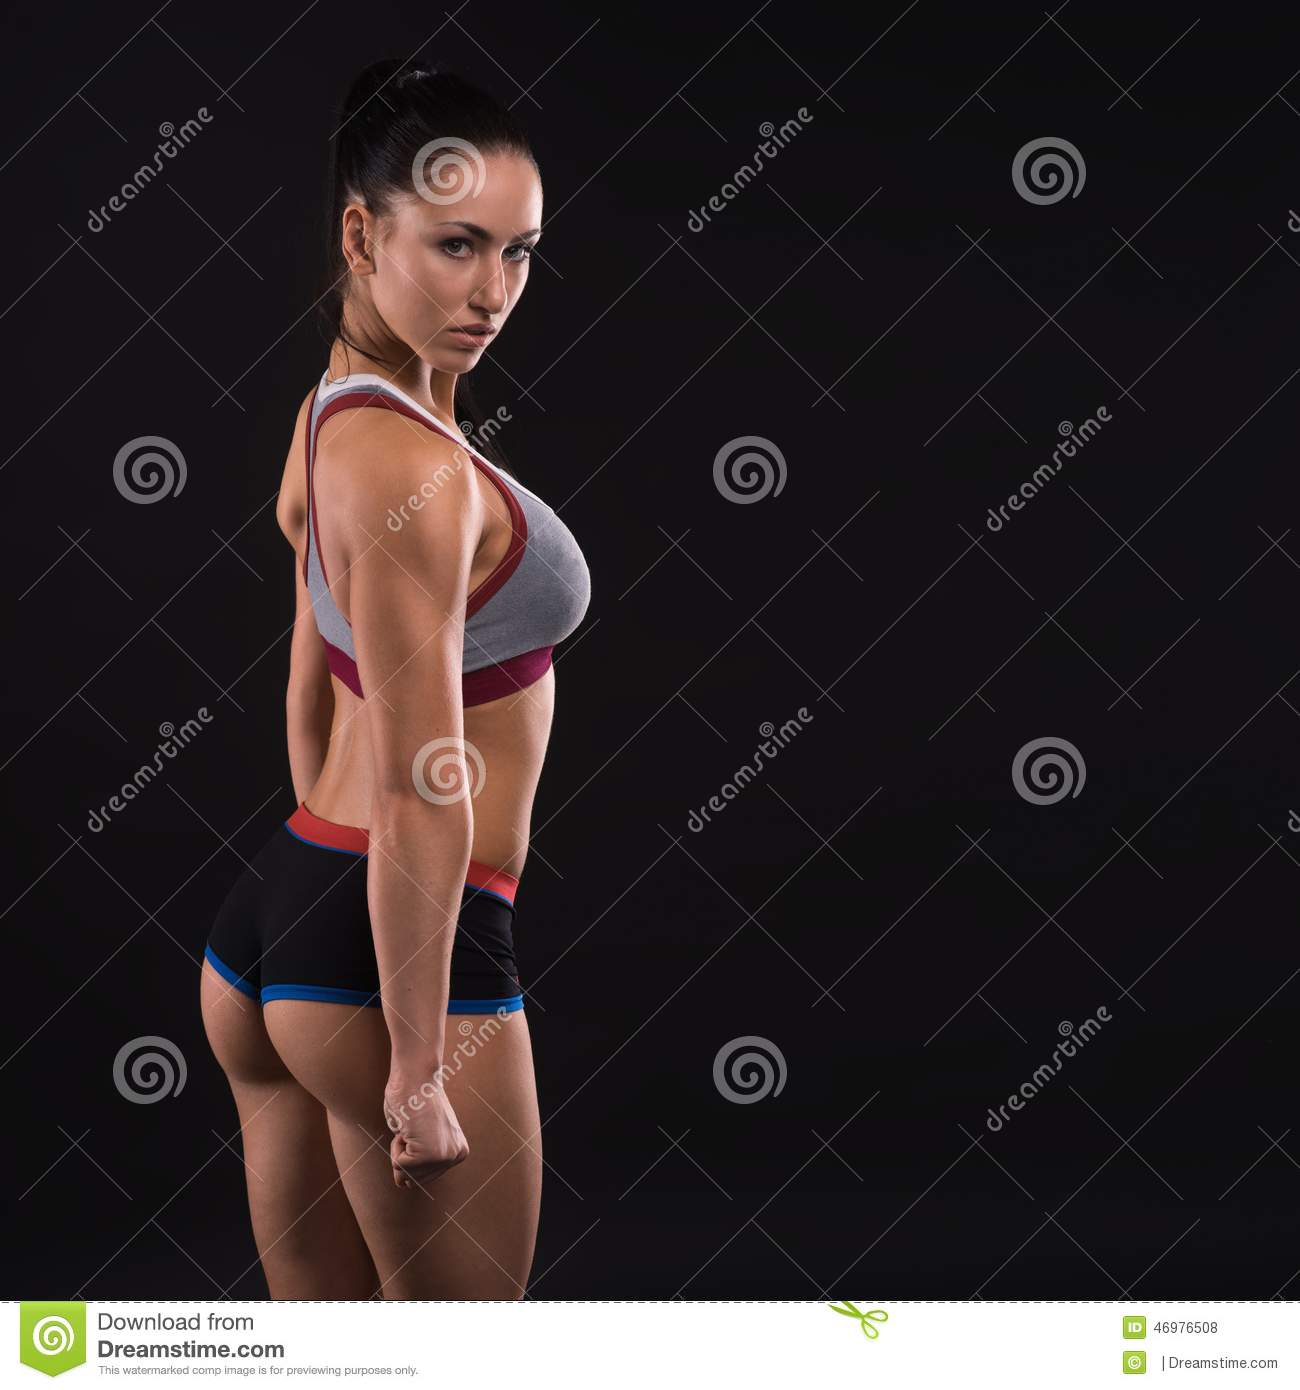 Young Sports-looking Nice Lady With Dark Hair Stock Photo